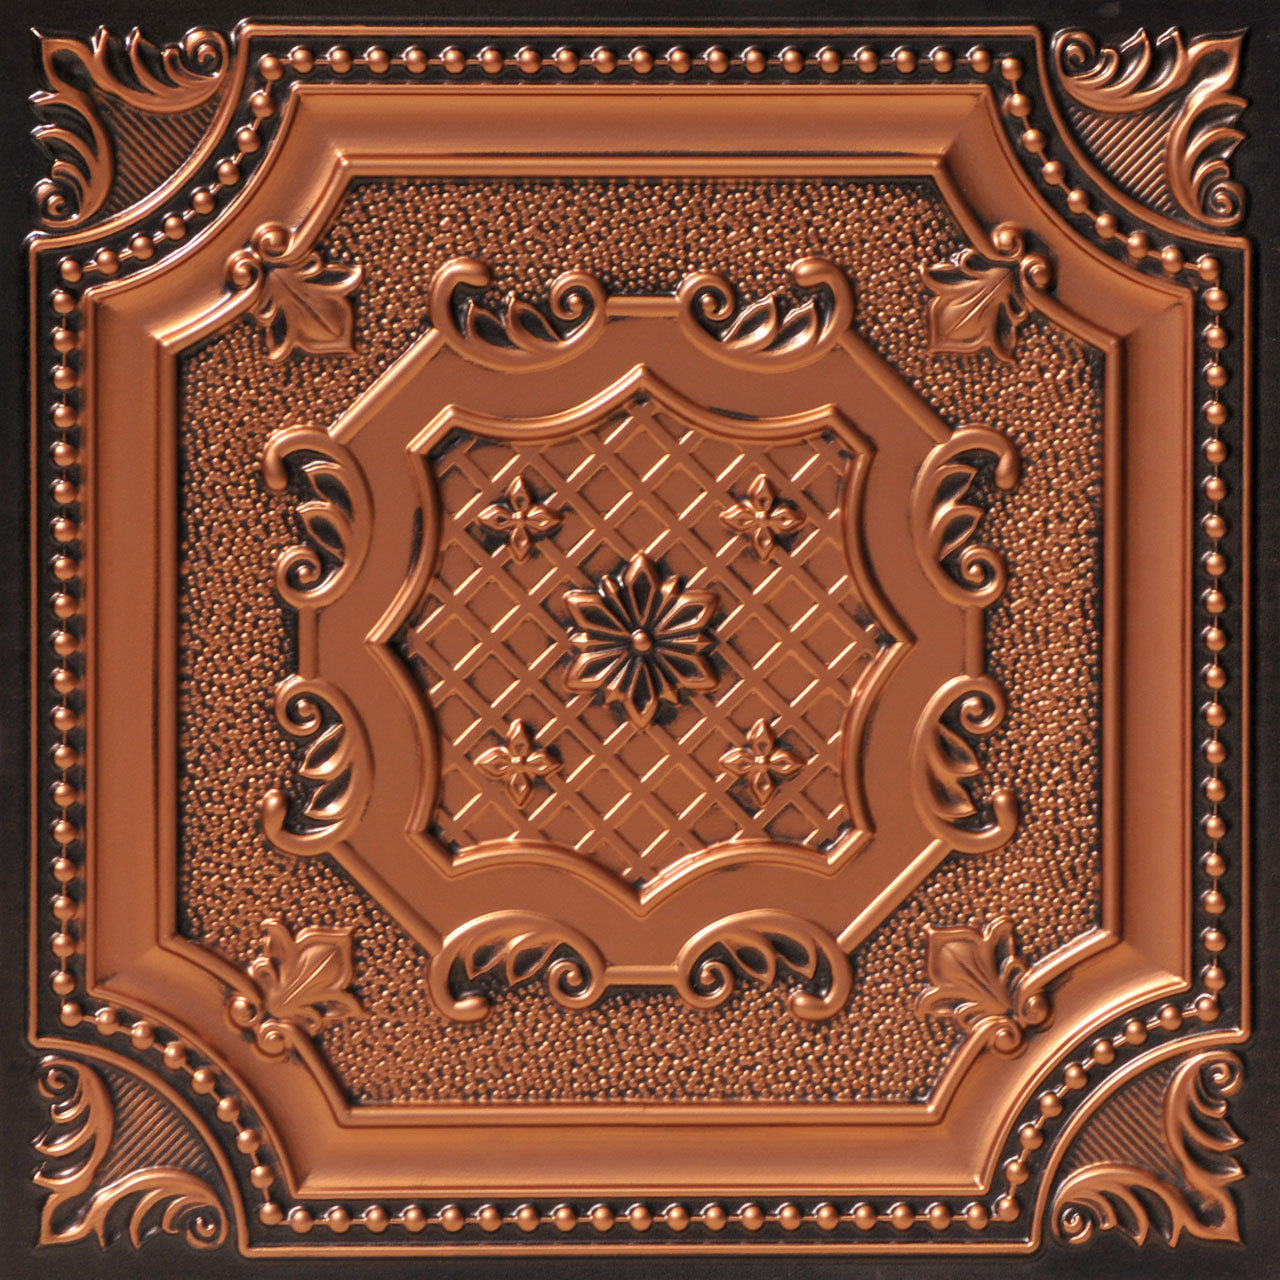 My Beautiful Damaris 2 ft. x 2 ft. PVC Glue-up or Lay in Ceiling Tile in Antique Copper